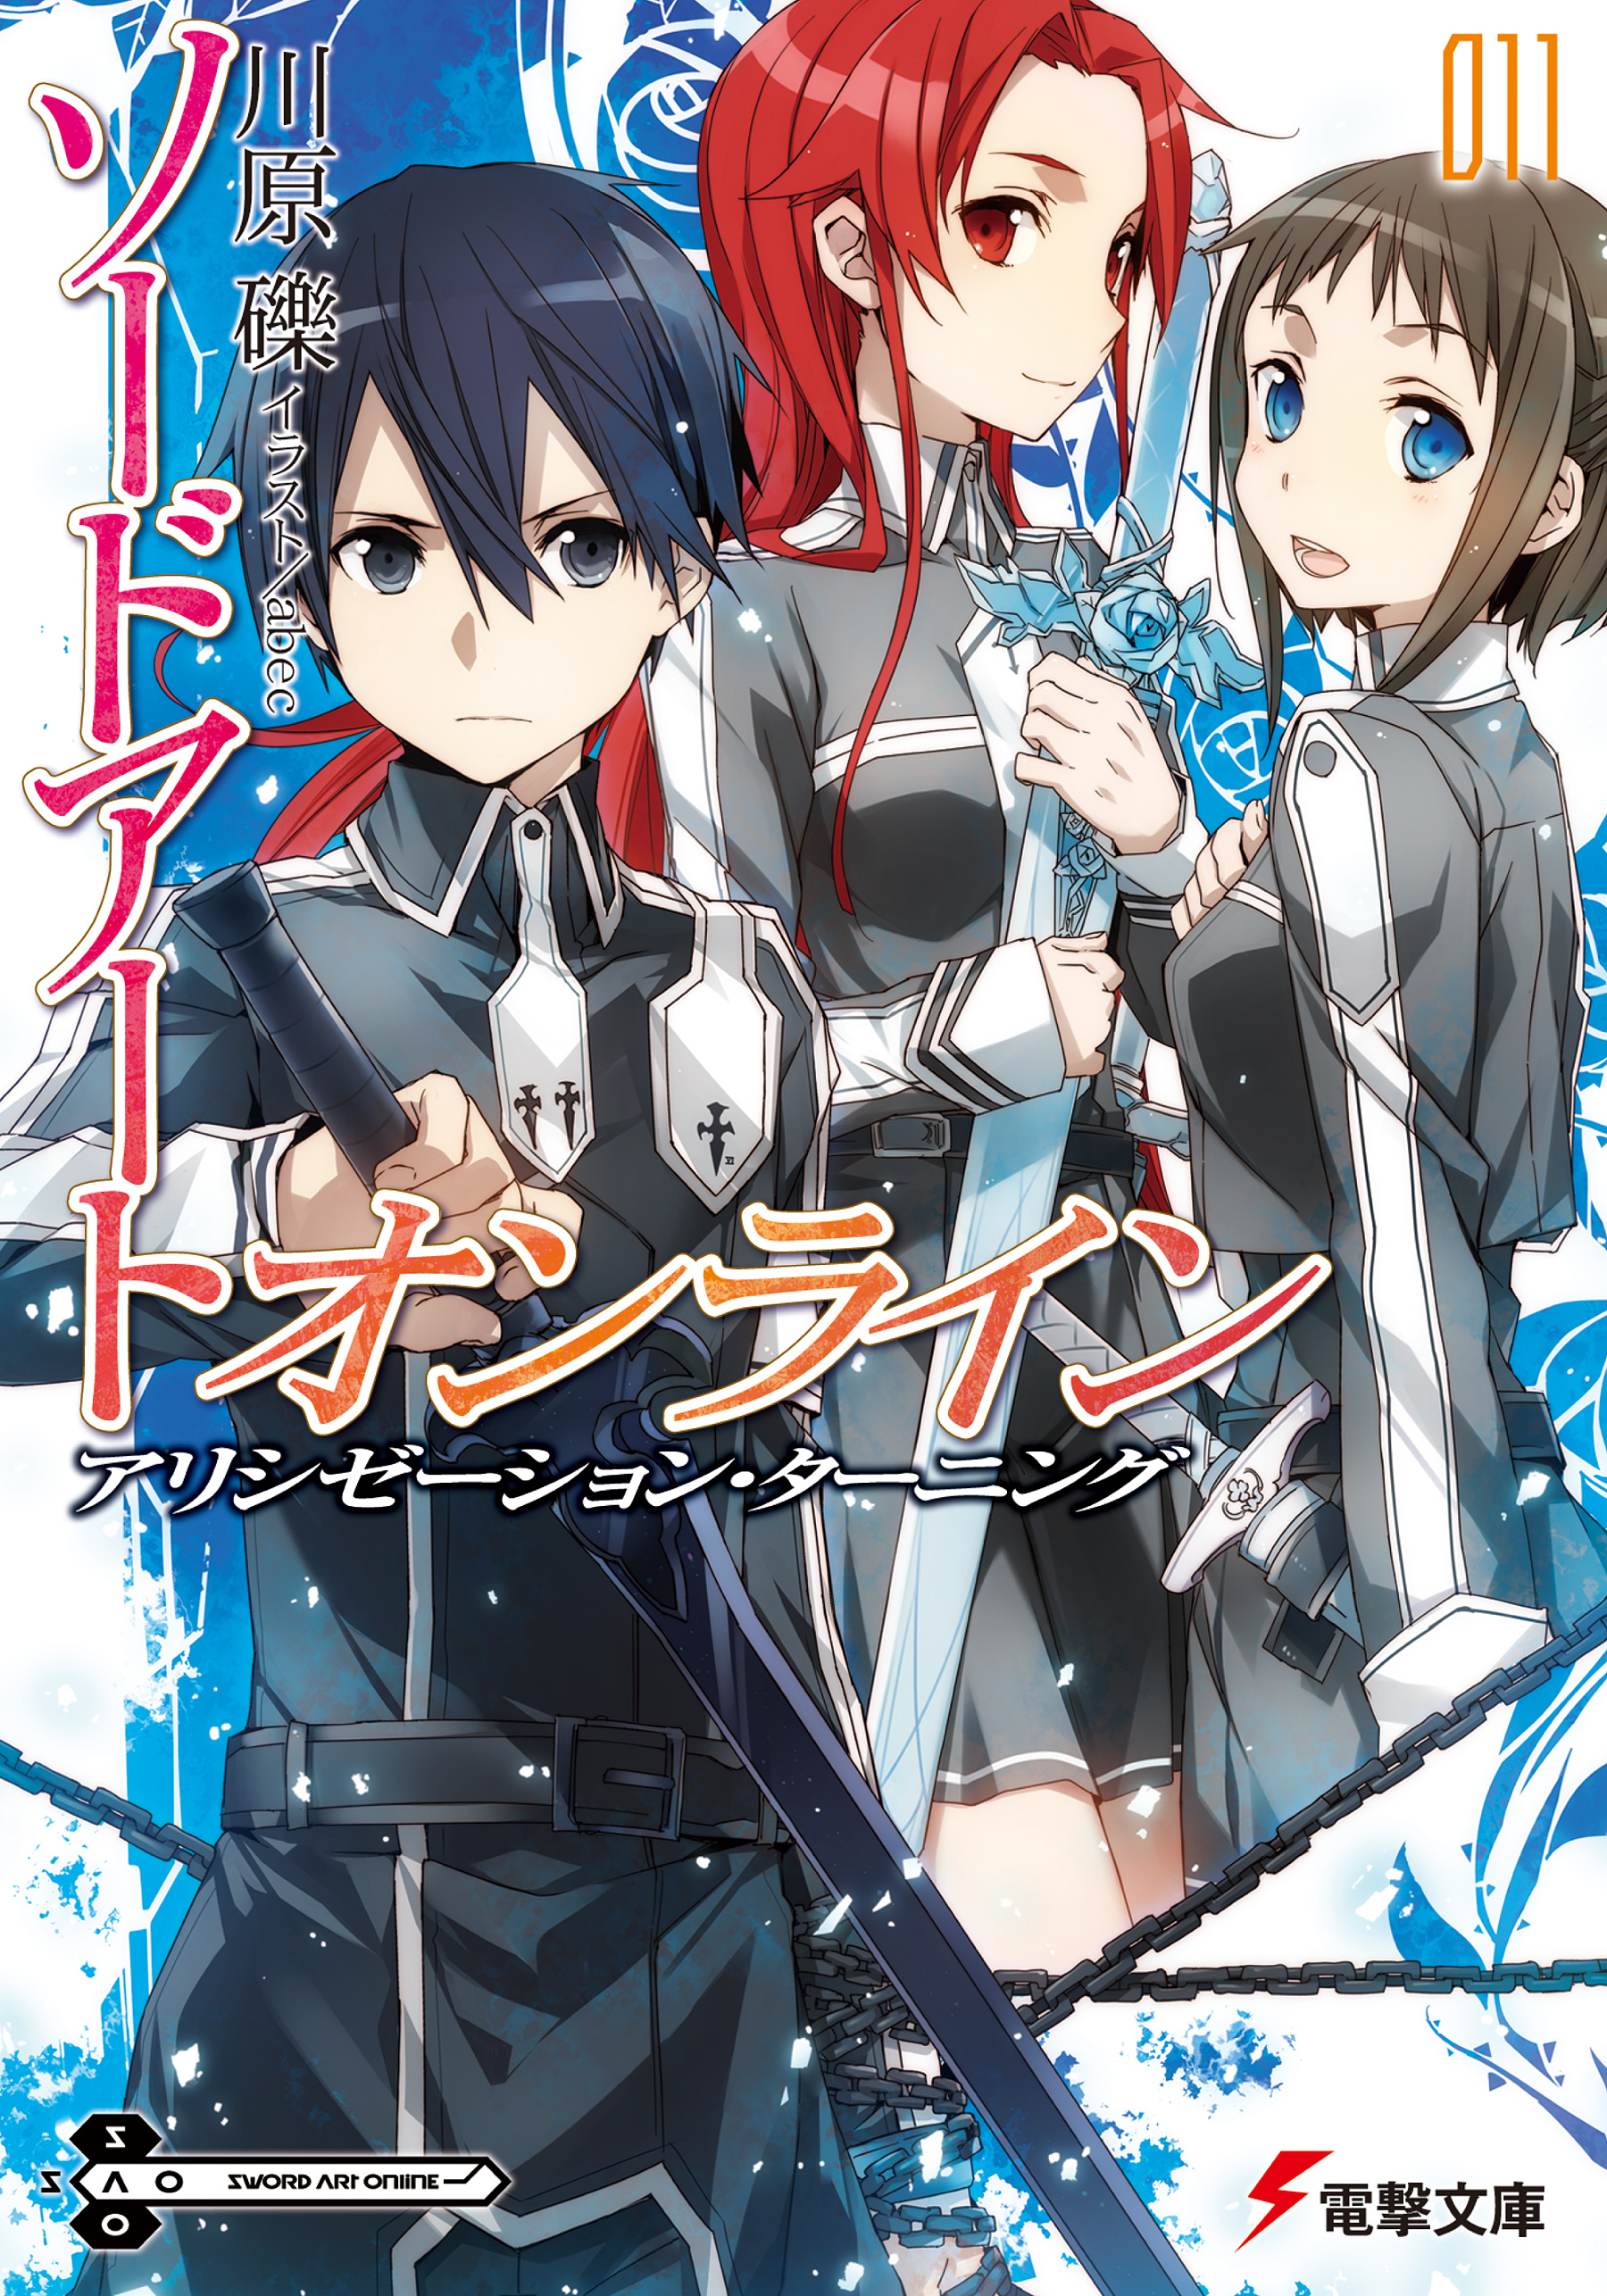 Sword Art Online Volume 11 English Pdf